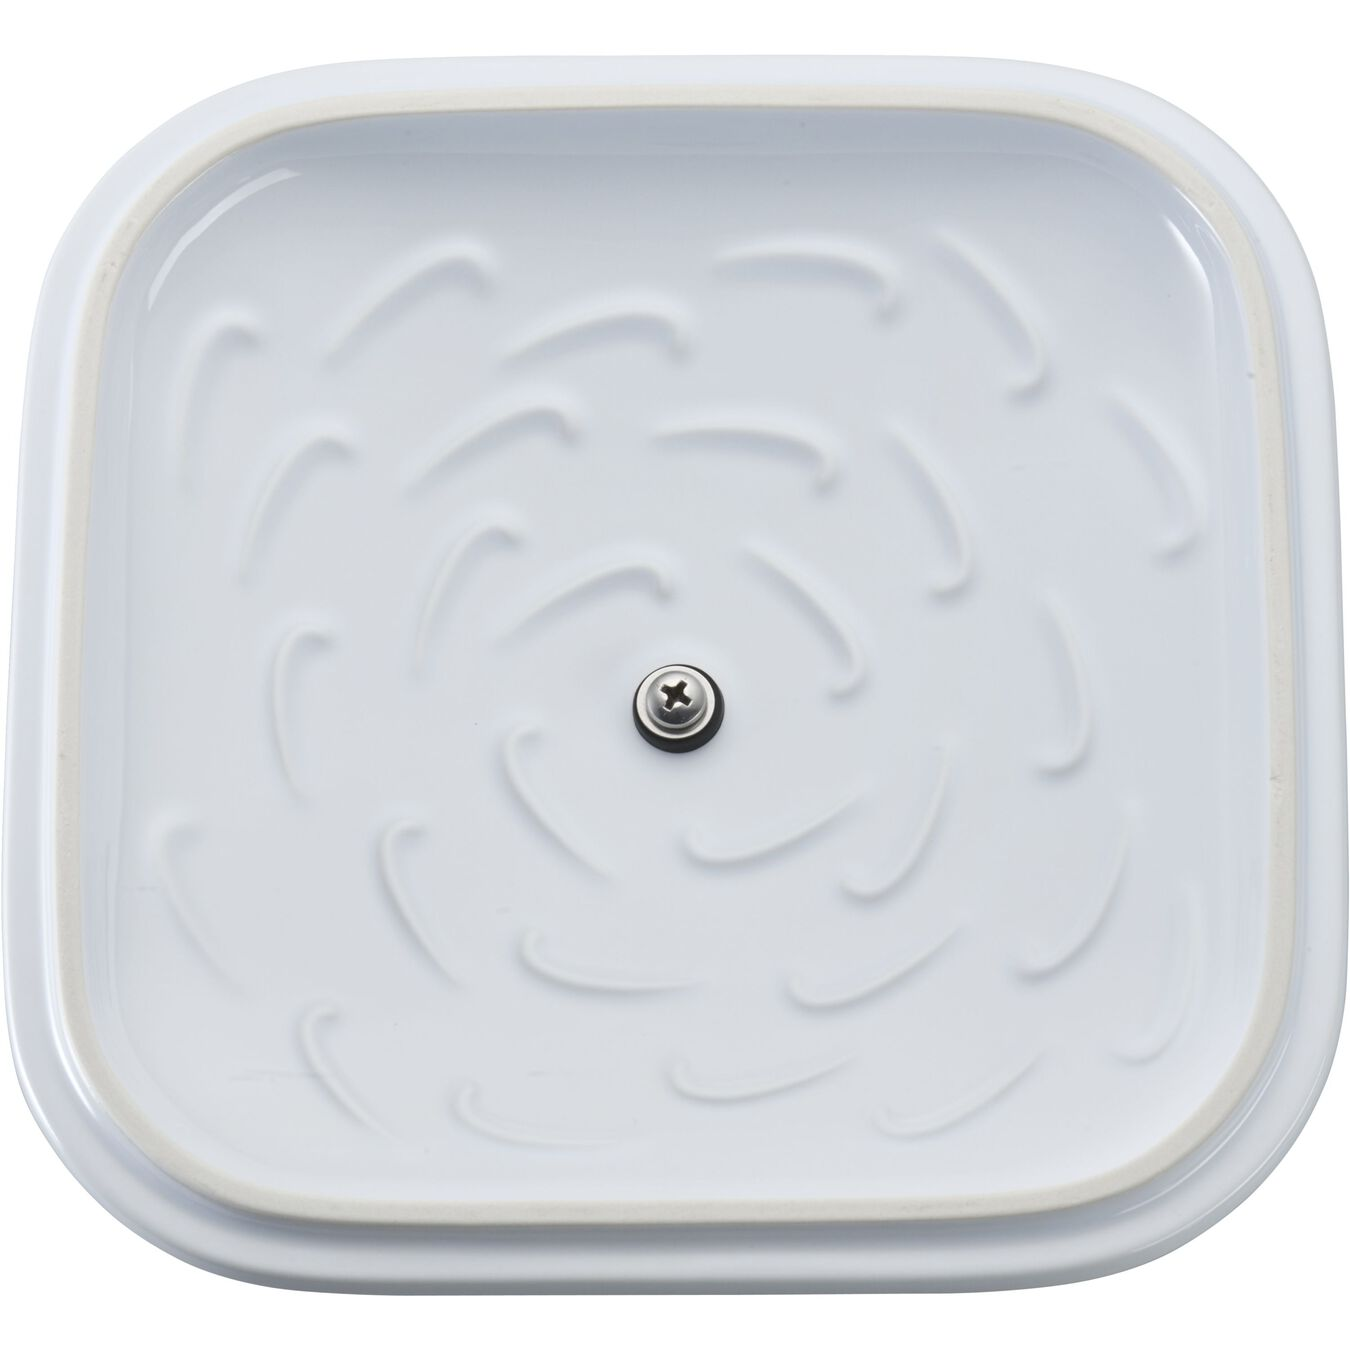 9-inch, square, Covered Baking Dish, white,,large 5